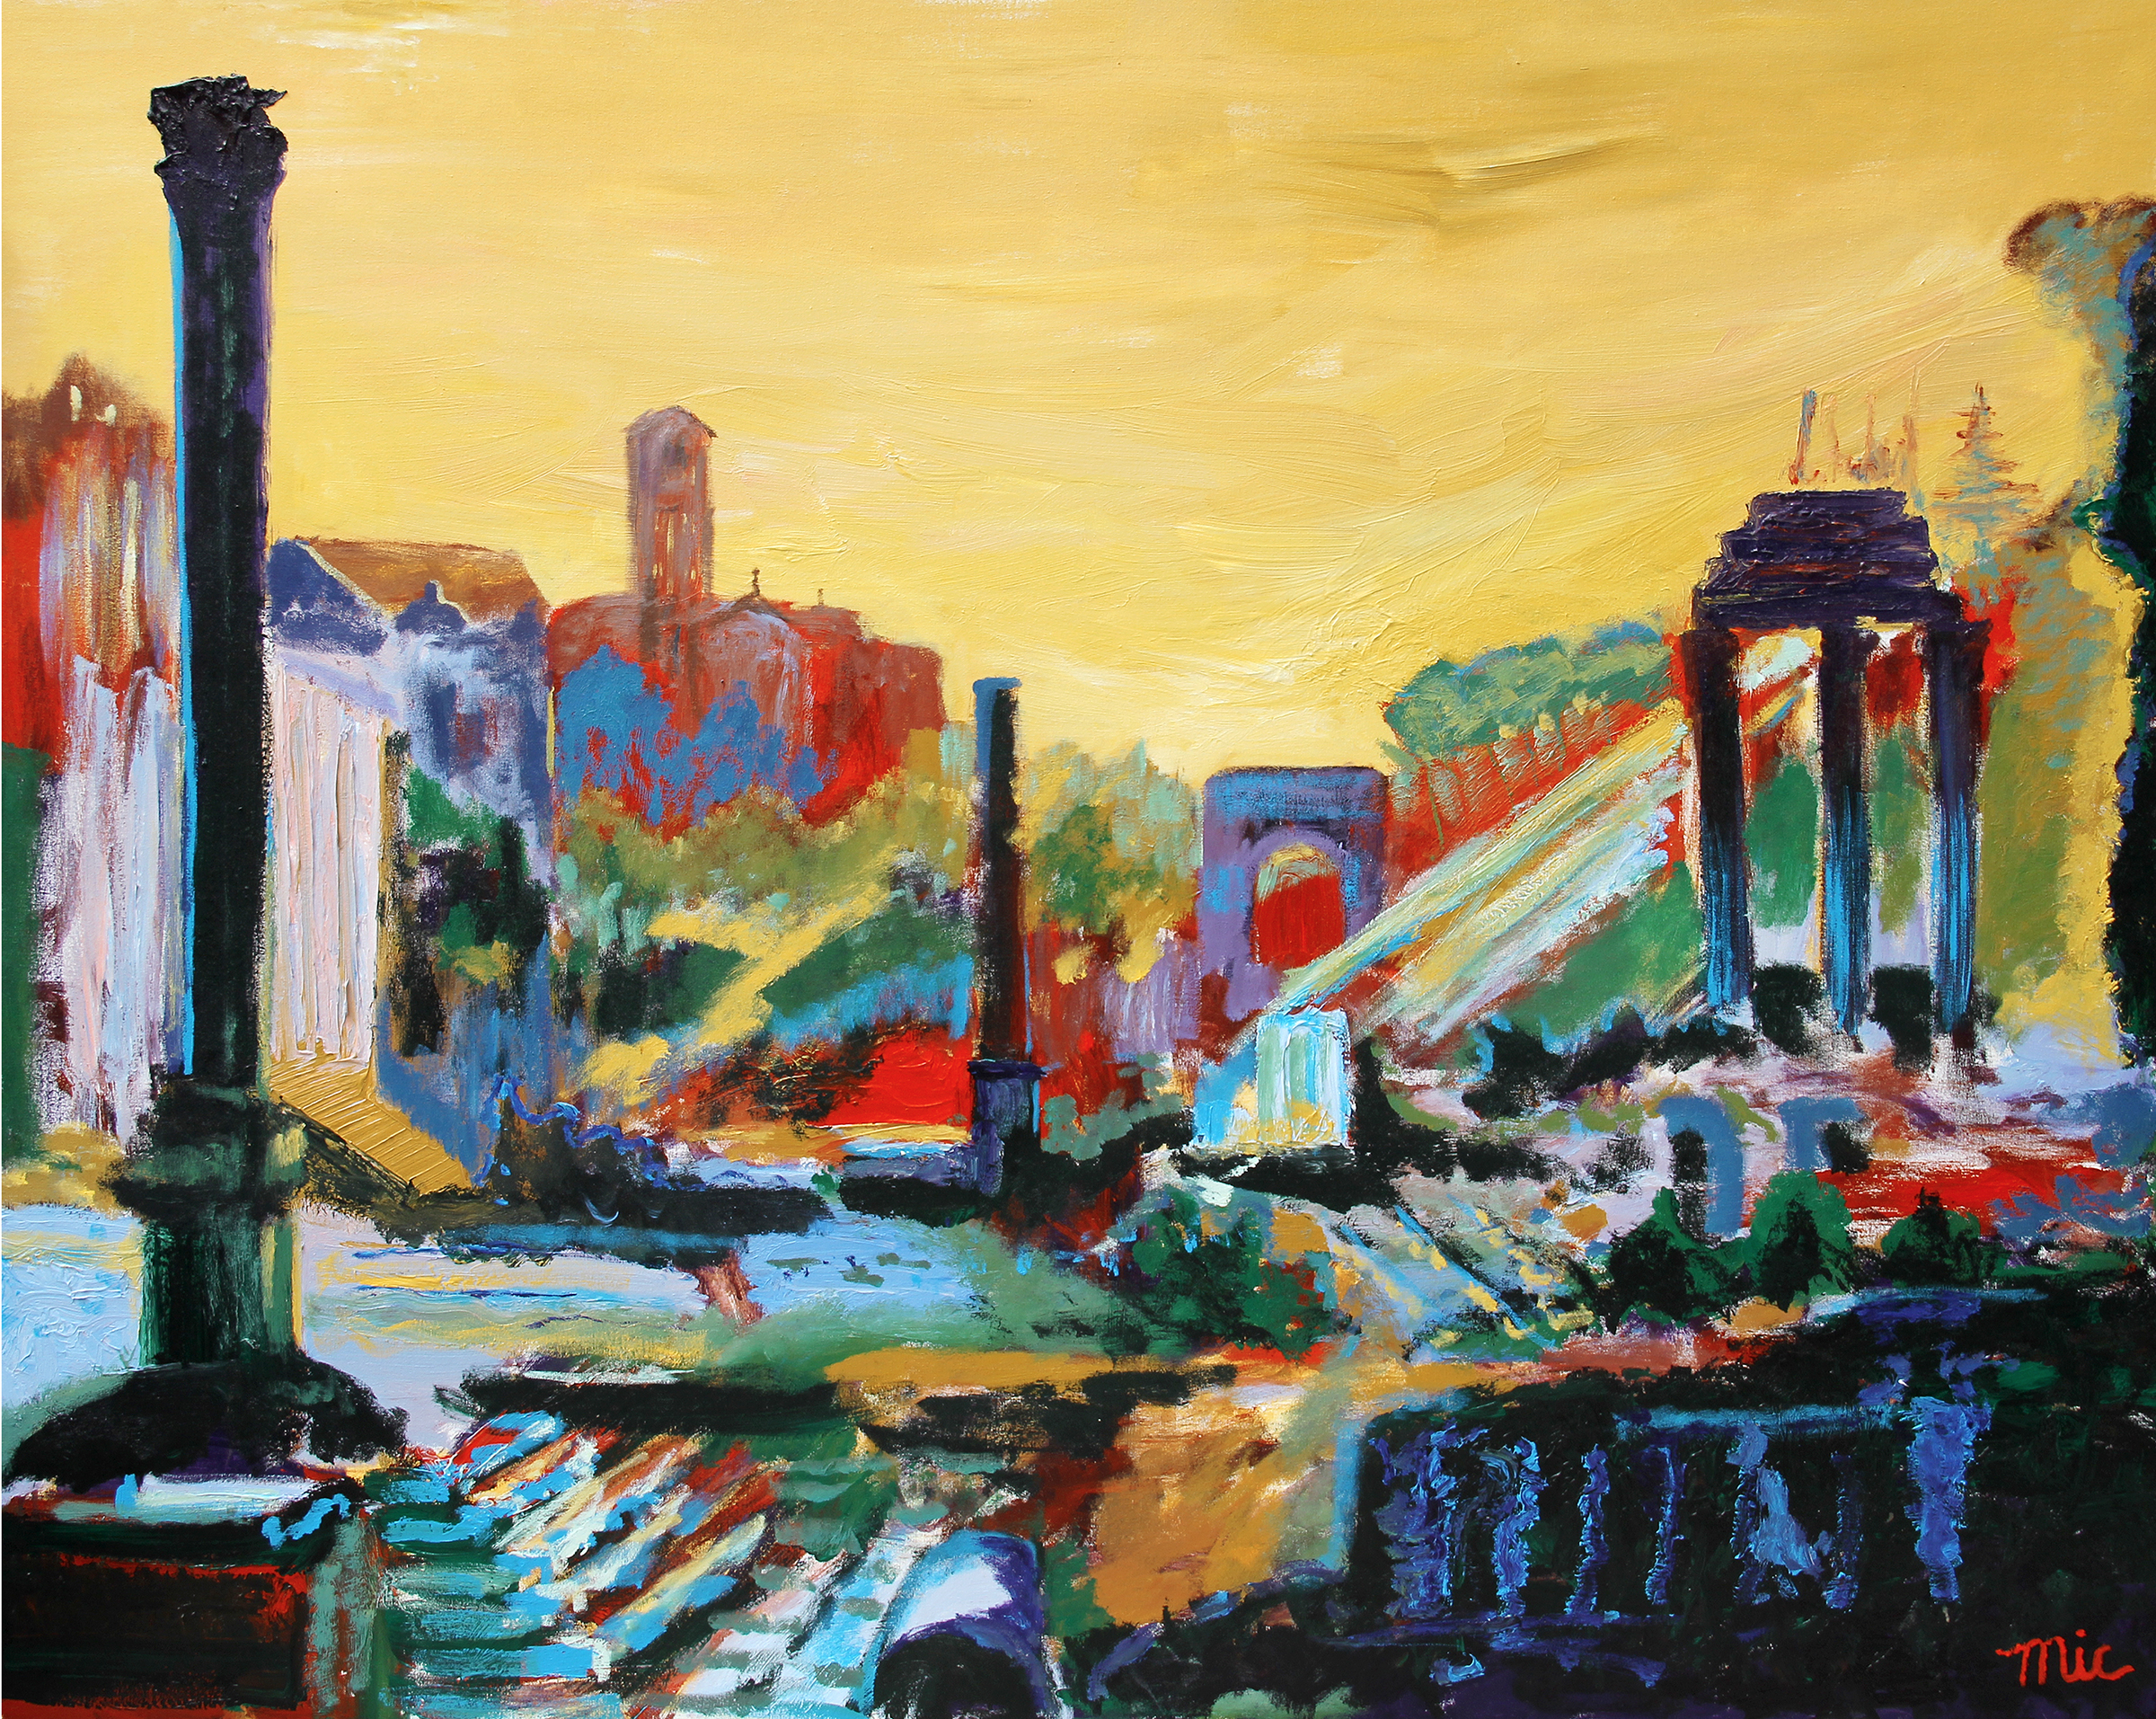 Roman Forum - Acrylic on Canvas Private Collection of Ed and Rachel PerdueGiclee Limited Edition and canvas prints are available. Please visit the prints gallery.